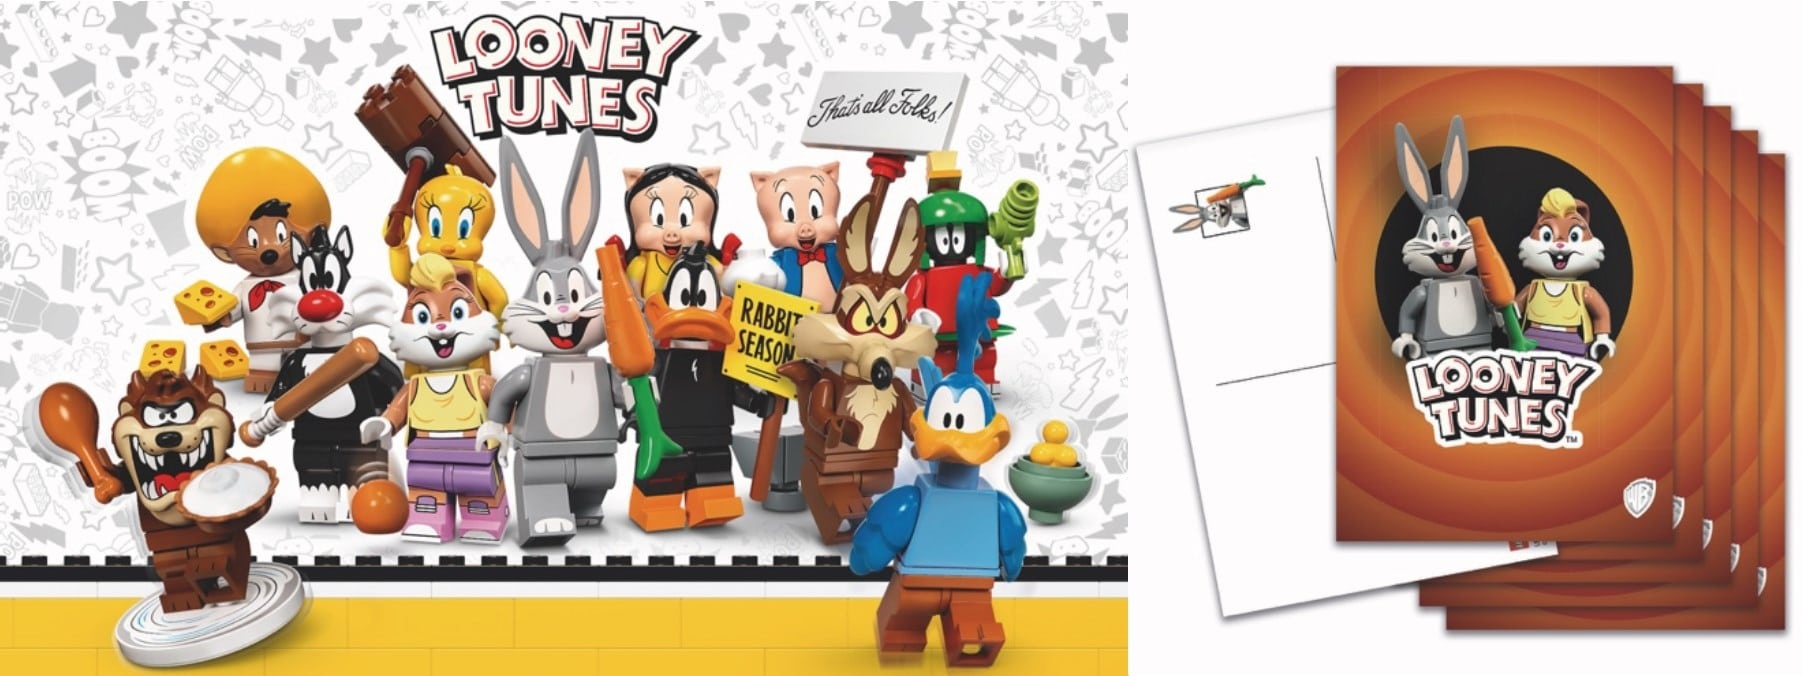 Jb Spielwaren April 2021 Looney Tunes